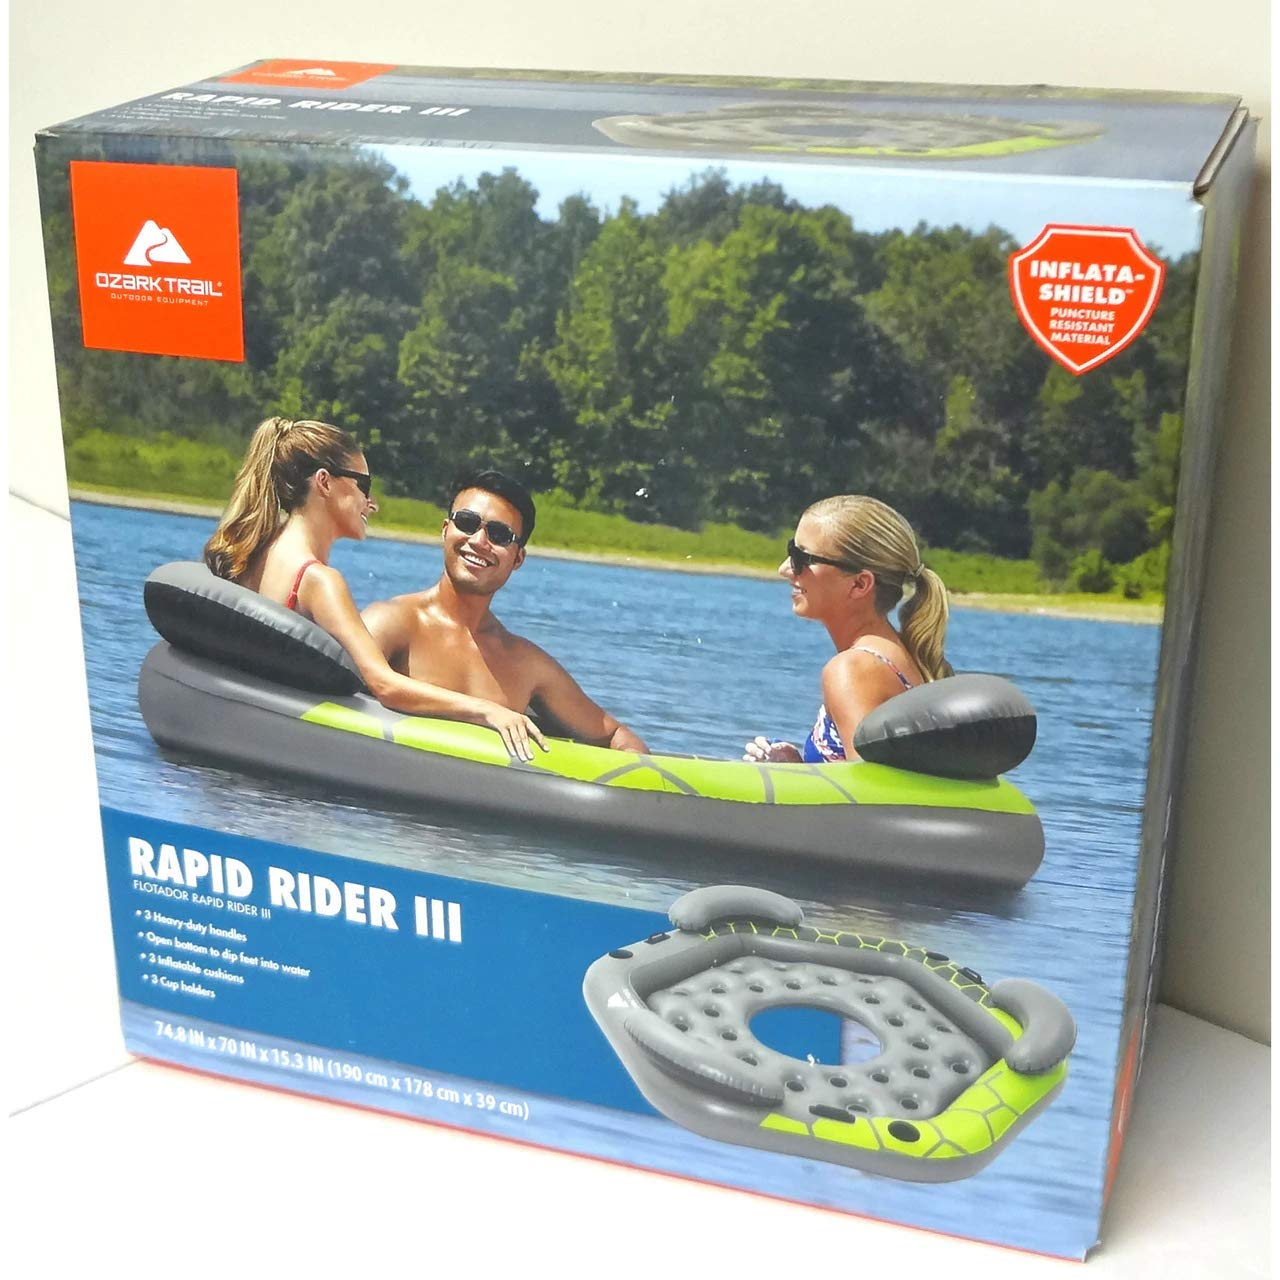 Amazon.com: Ozark Inflatable 3 Person Rapid Rider Tube Island Float Water Raft River Lake GREEN WLM8: Kitchen & Dining